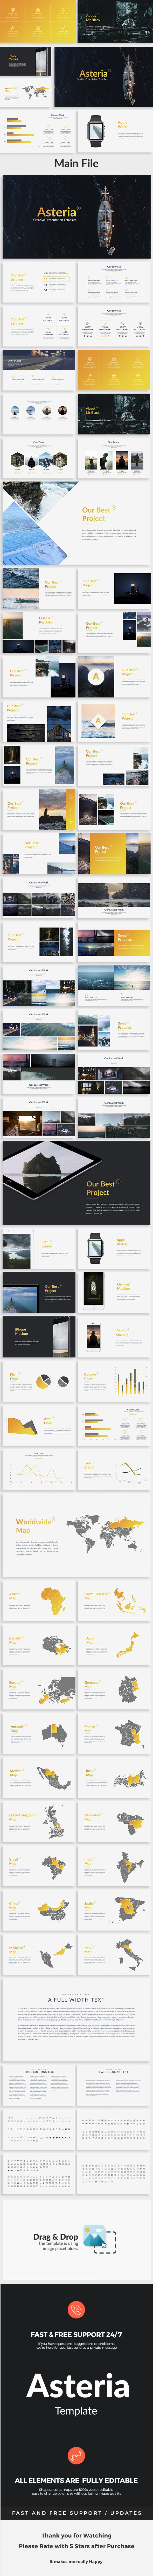 Asteria  Creative Google Slide Template — Google Slides PPTX #customizable #powerpoint • Download ➝ https://graphicriver.net/item/asteria-creative-google-slide-template/19188700?ref=pxcr